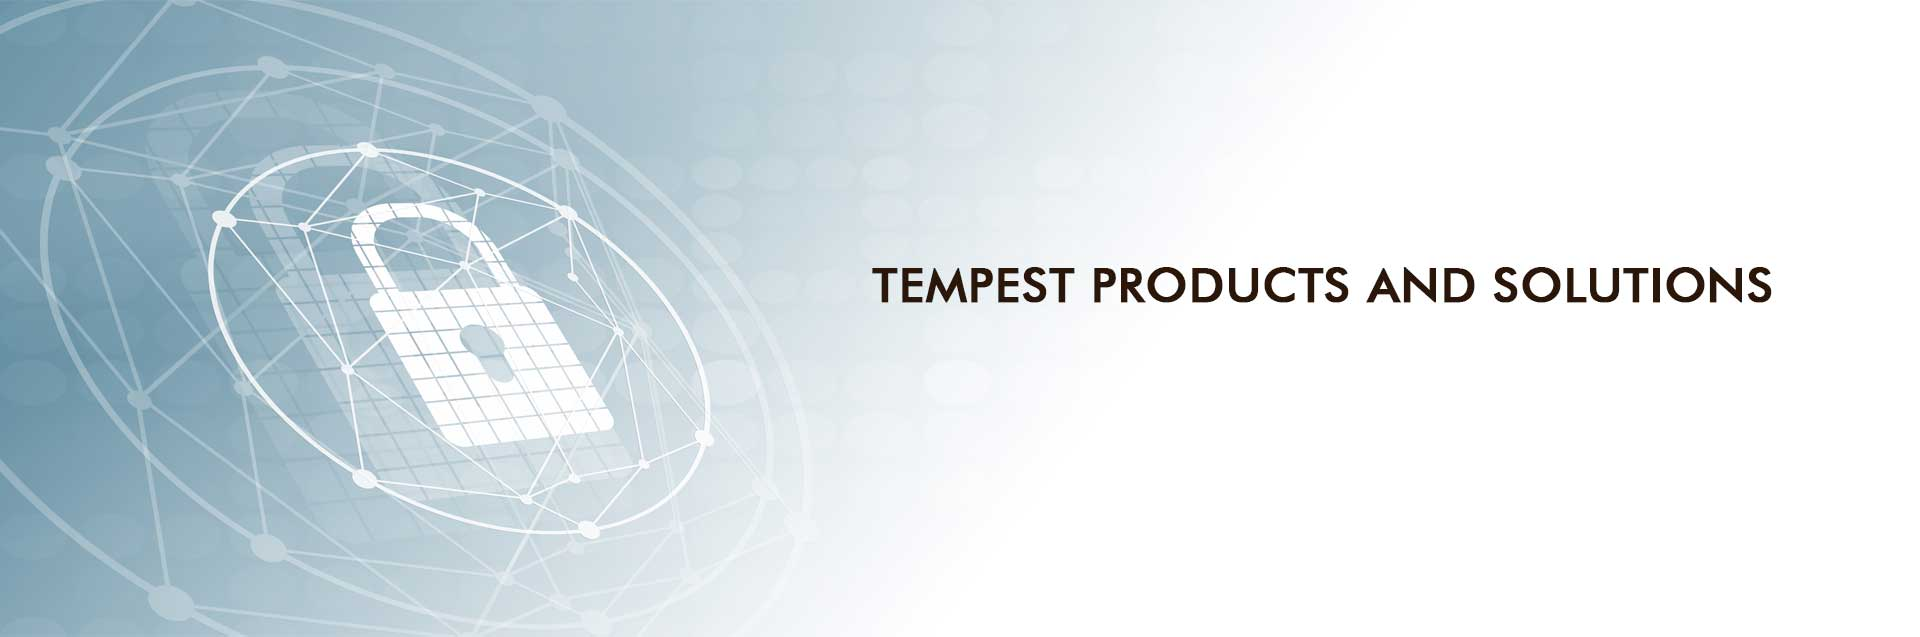 Tempest Security Products and Solutions